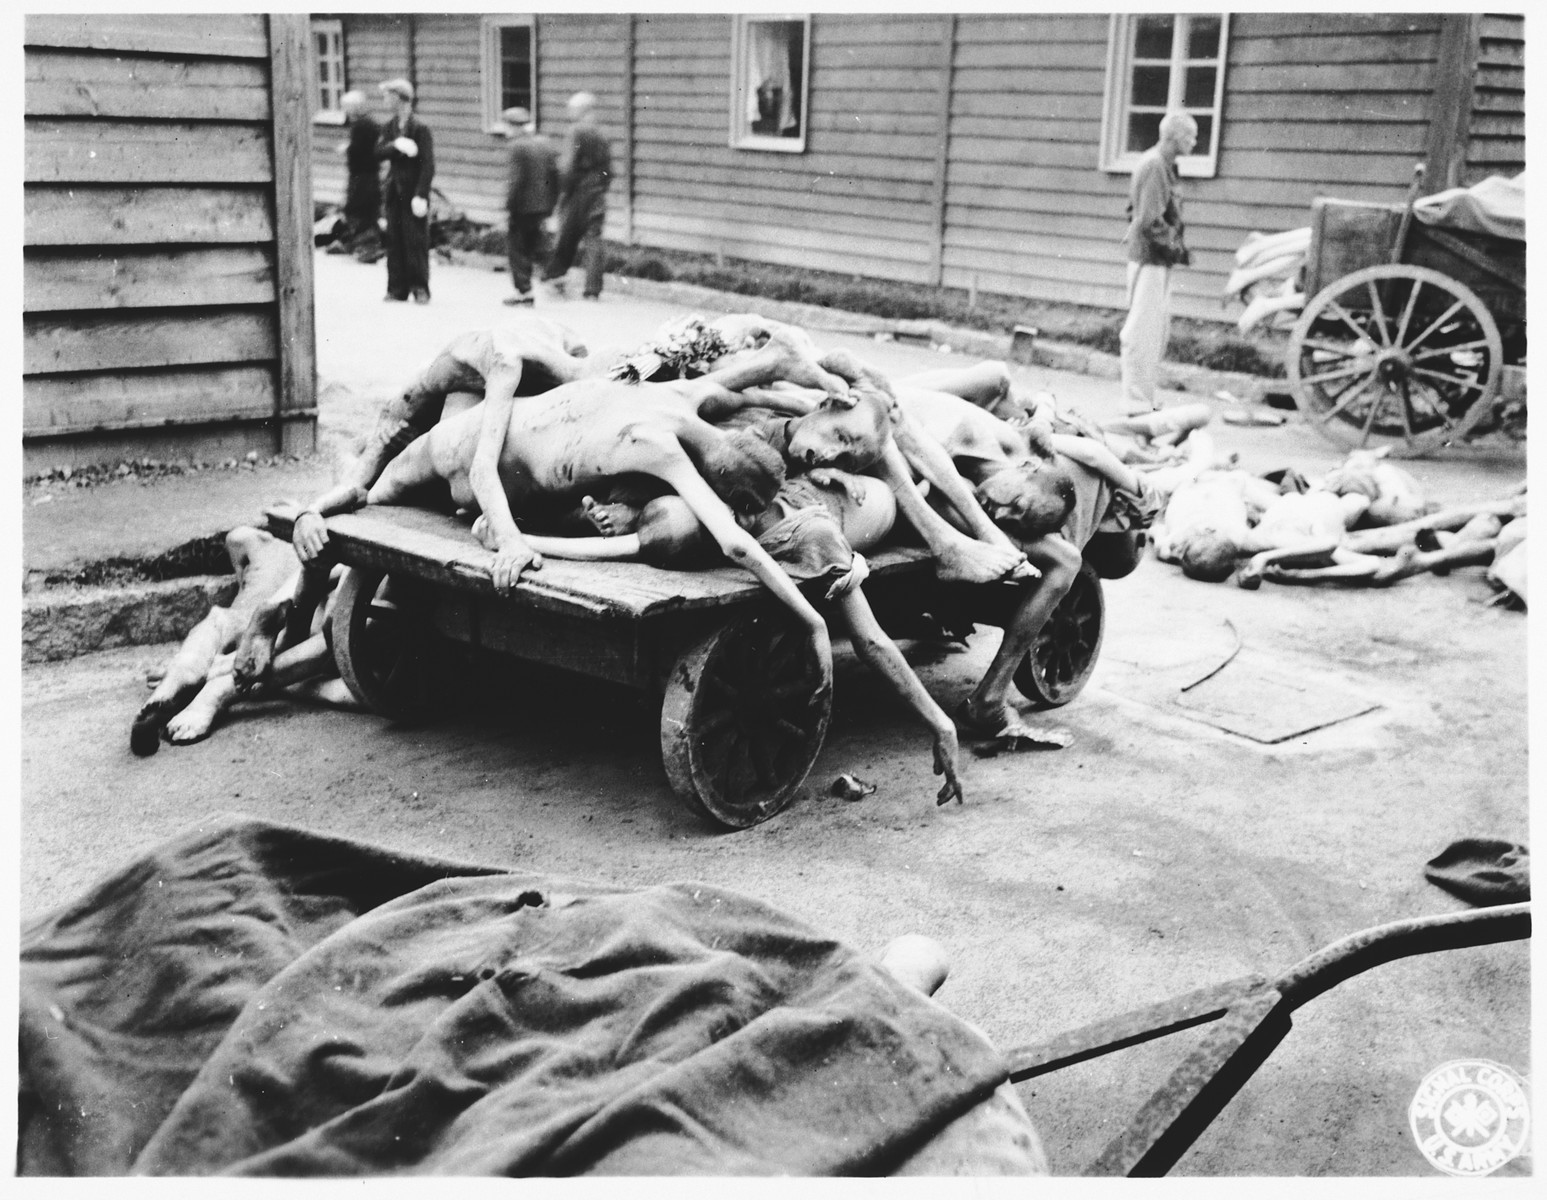 View of a cart laden with the bodies of prisoners who perished in the Gusen concentration camp.